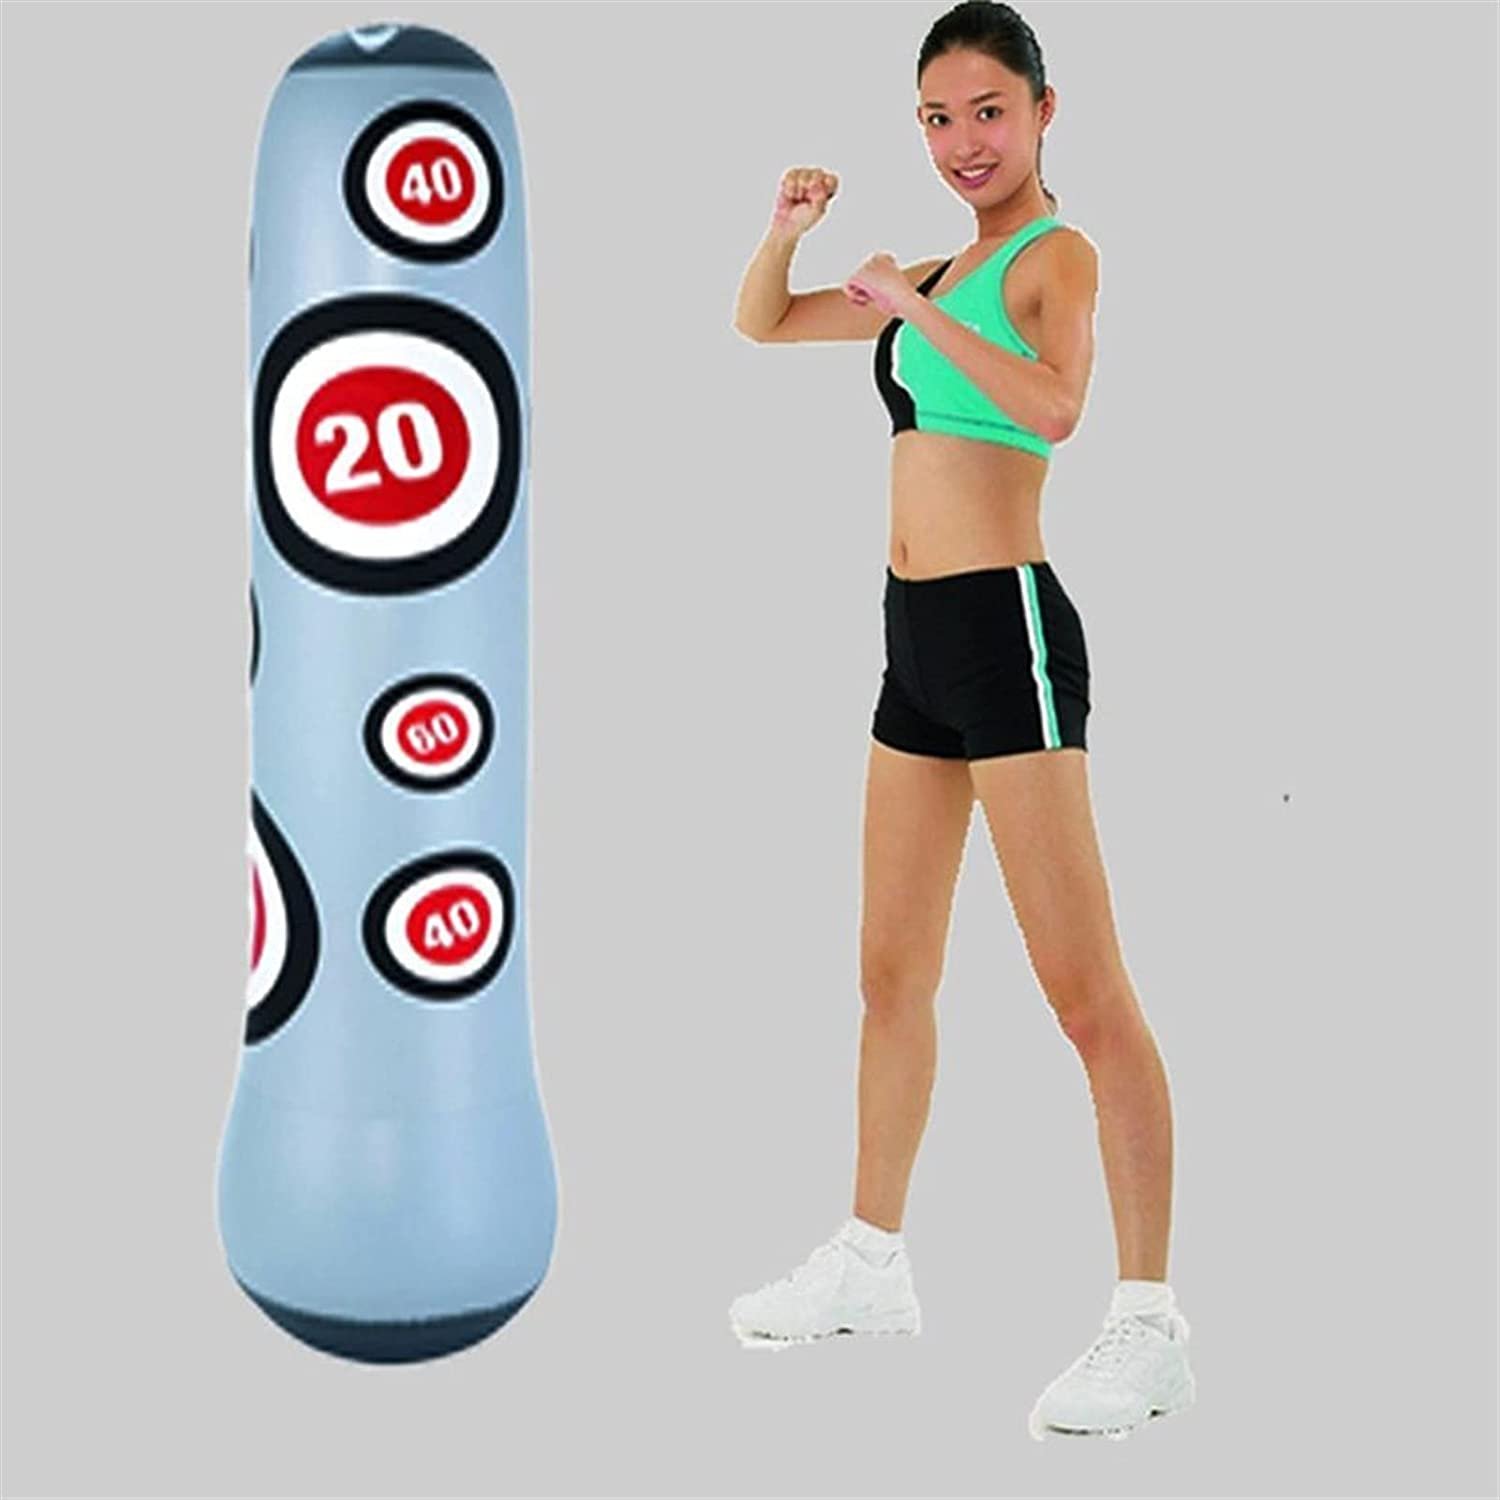 Popular products FFOO Boxing Bag Punching Inflatable Bags Cash special price Ba 1.6M